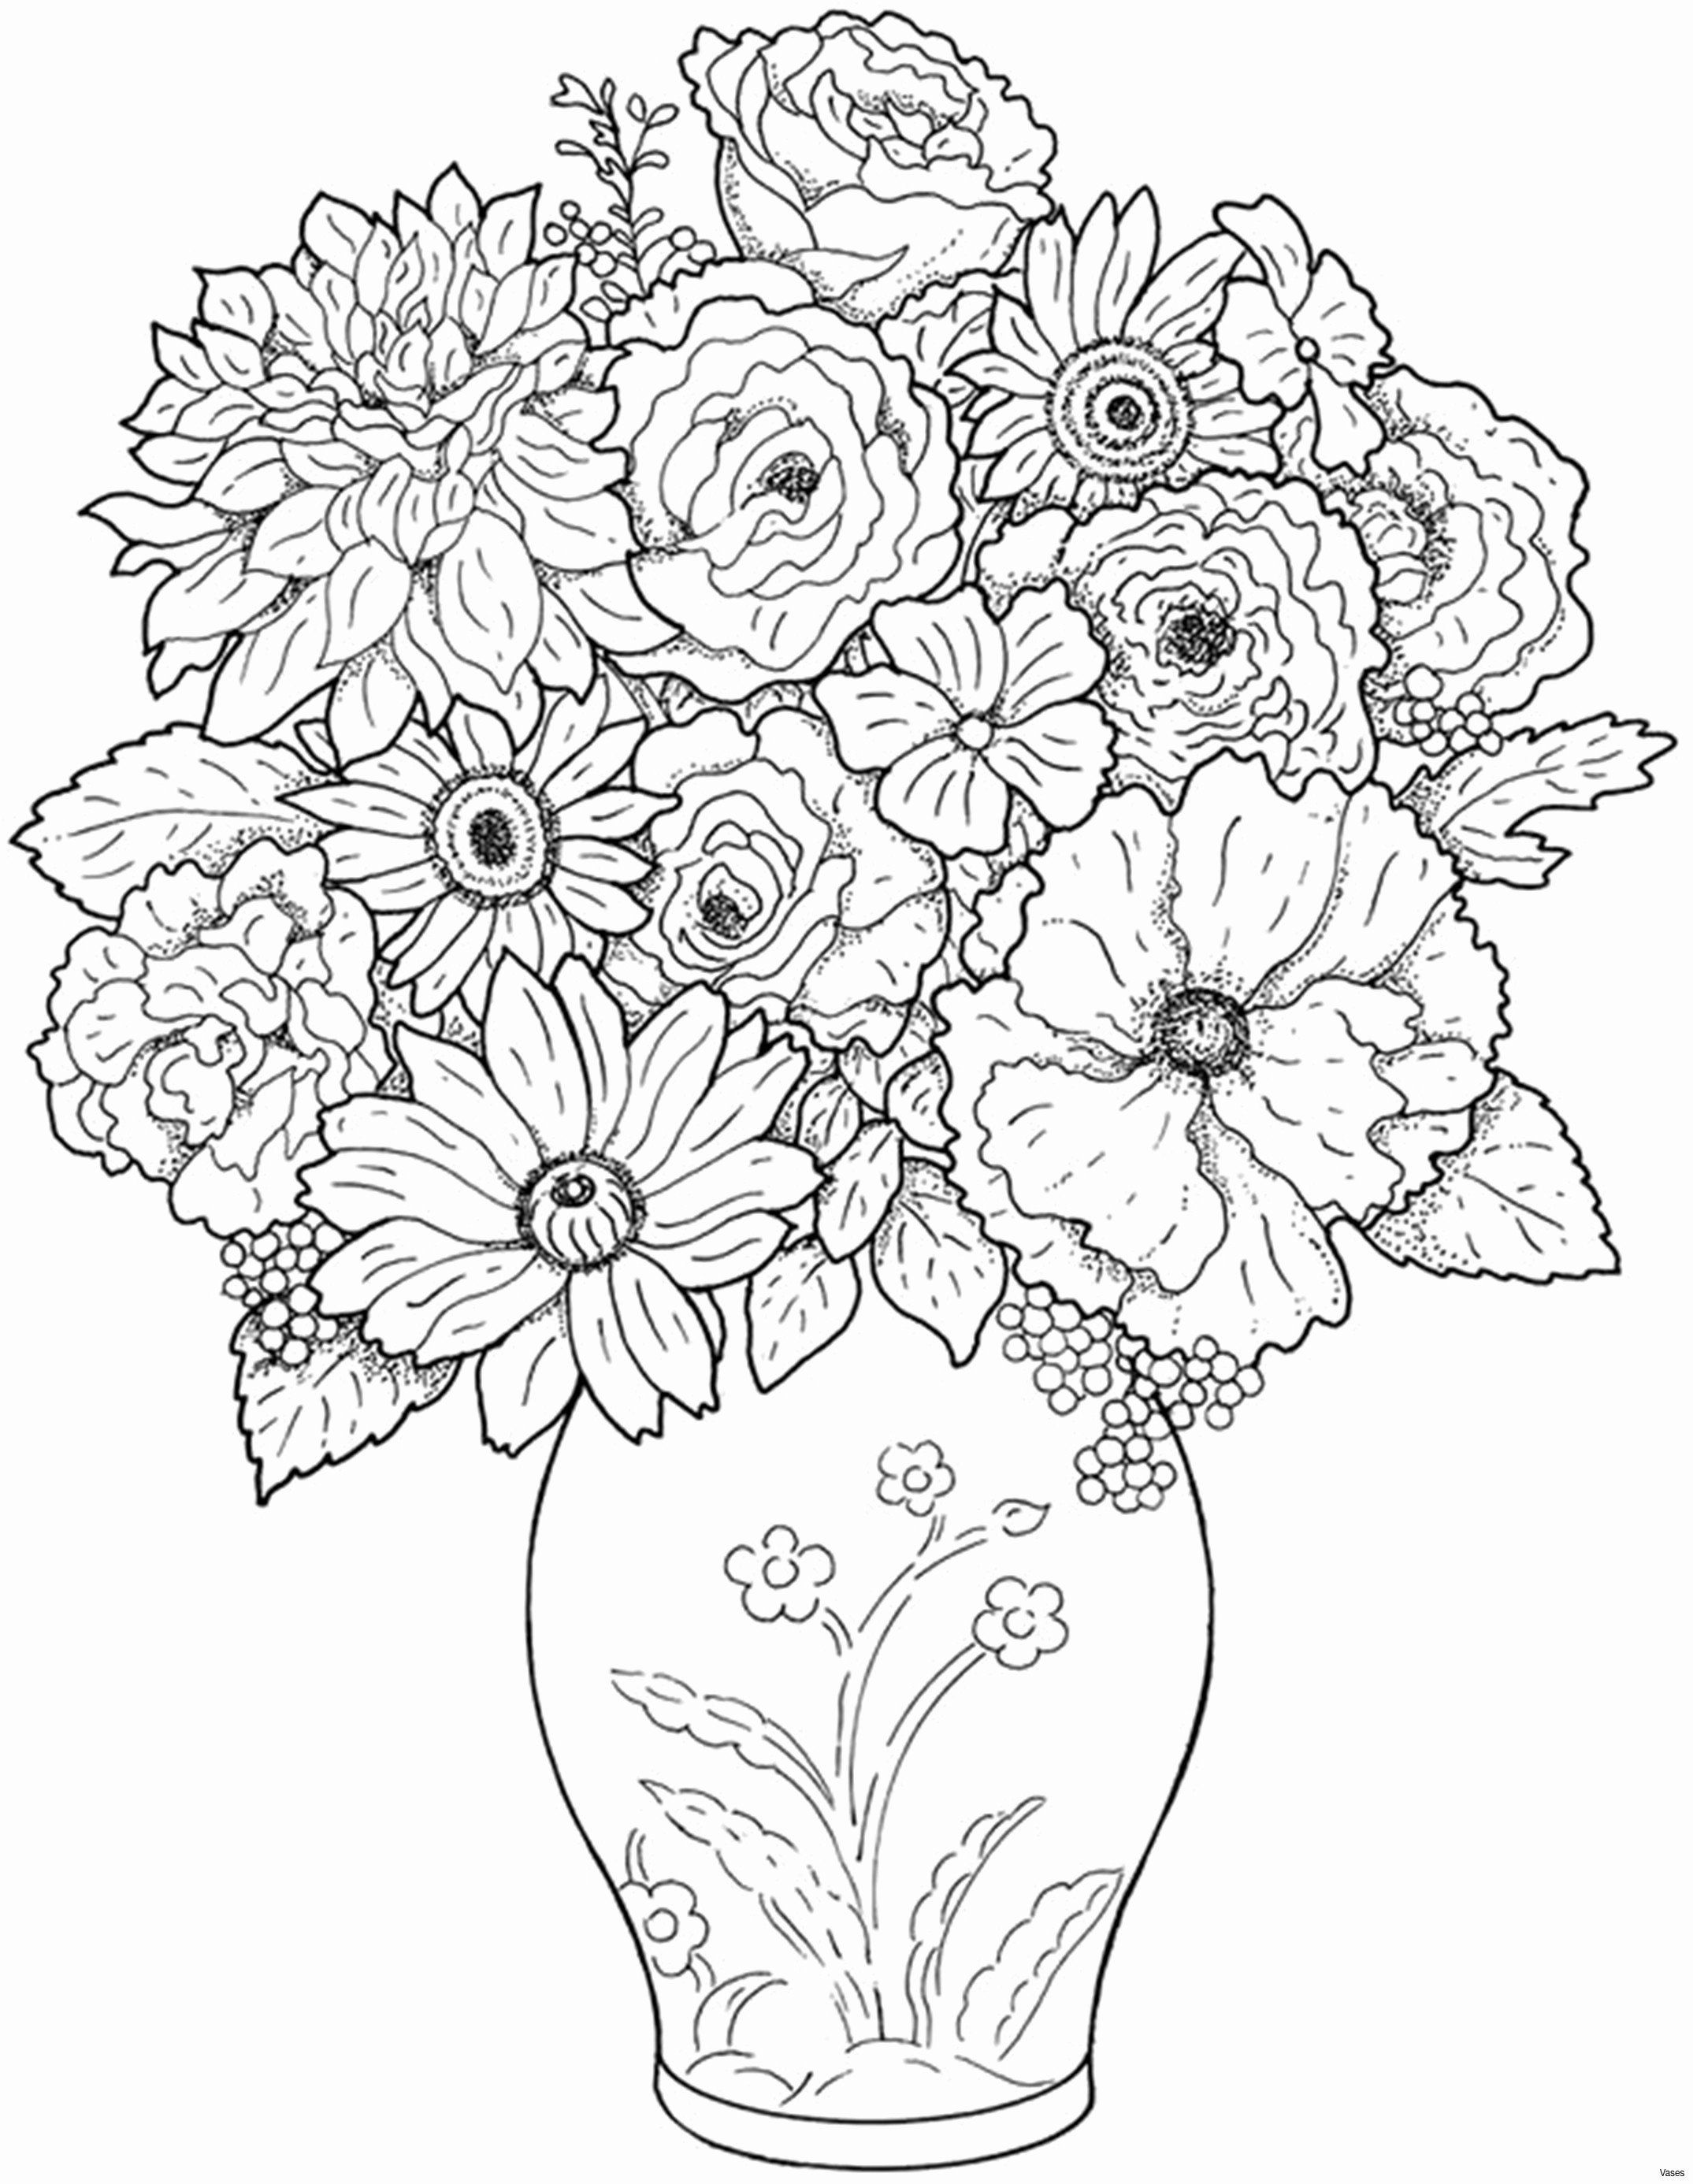 Stress Relief Coloring Pages Fresh Stress Free Drawing At Paintingvalley Printable Flower Coloring Pages Detailed Coloring Pages Butterfly Coloring Page